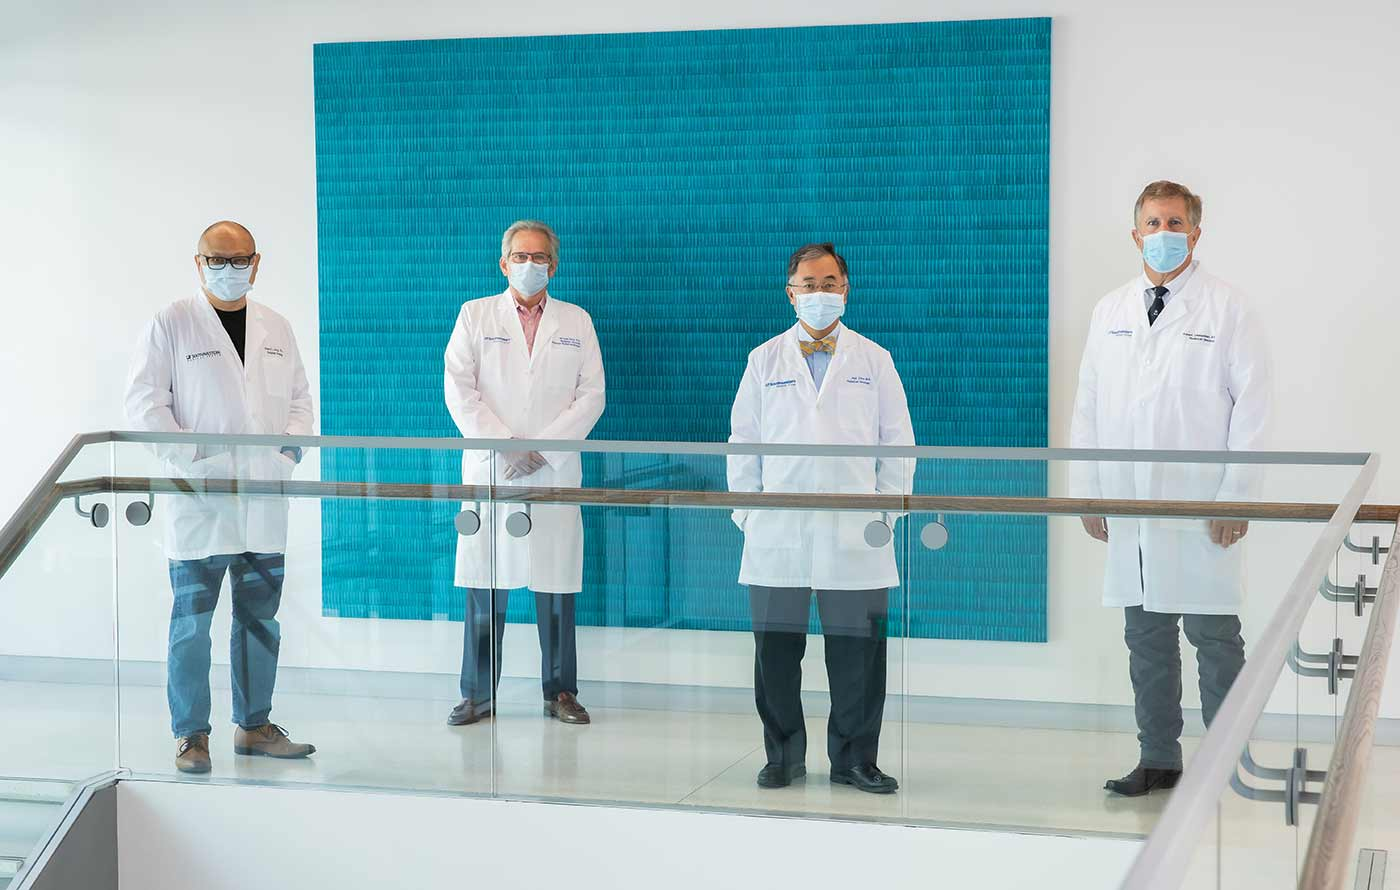 Fourp men in lab coats, wearing masks, spaced apart